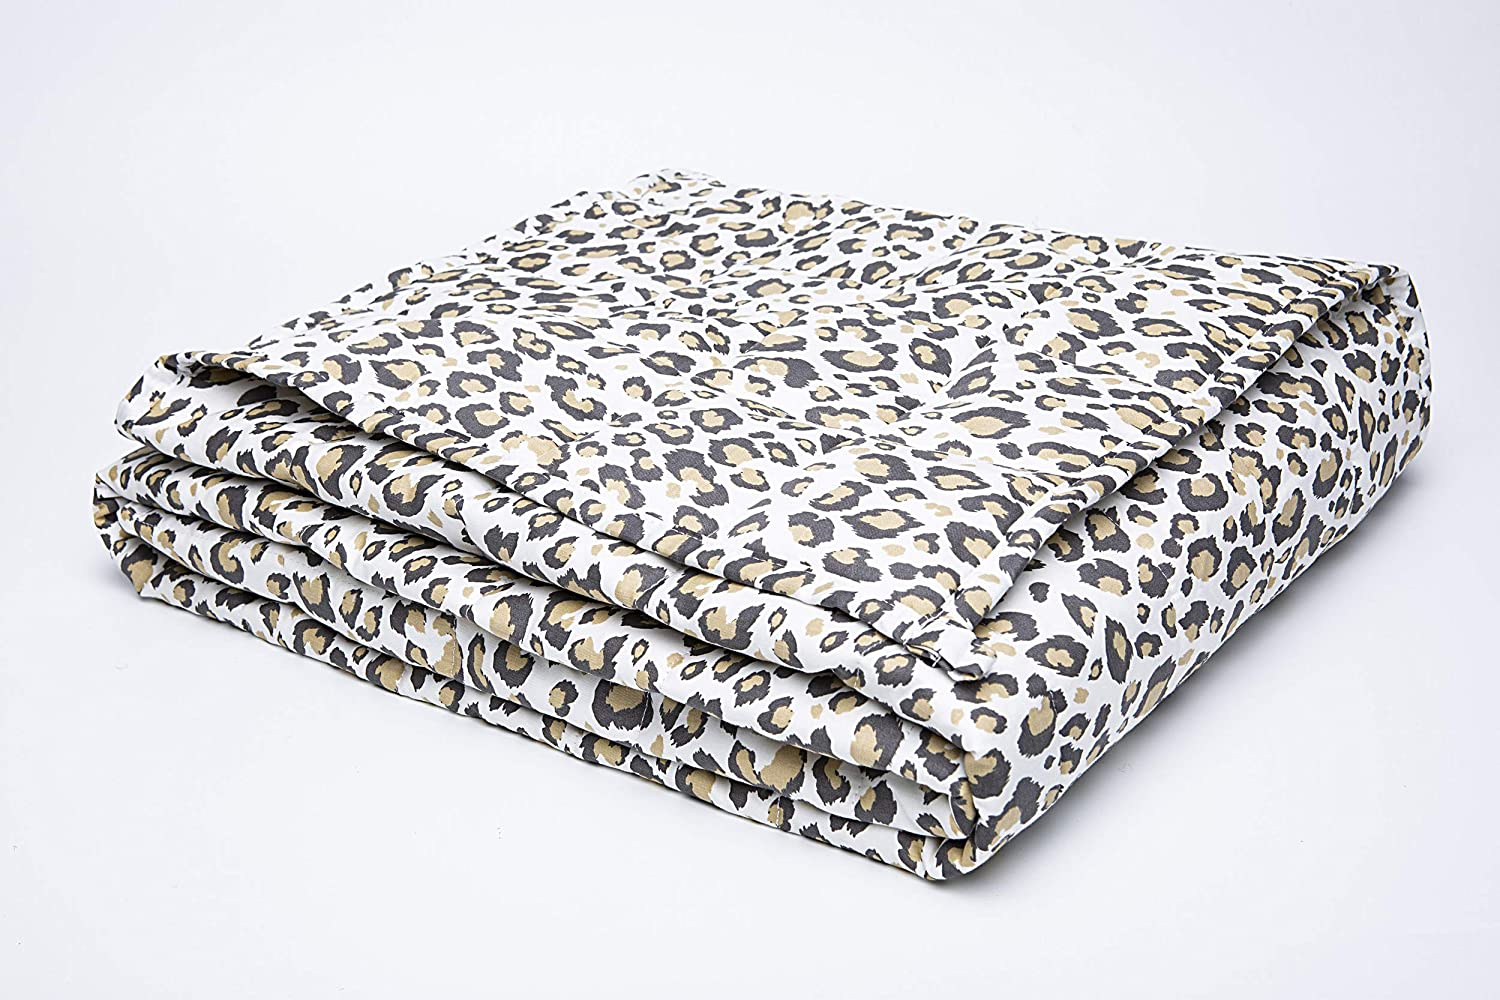 BEDCOLOR Weighted Blanket Heavy Cheap Brown Translated 48×72 Leopard in